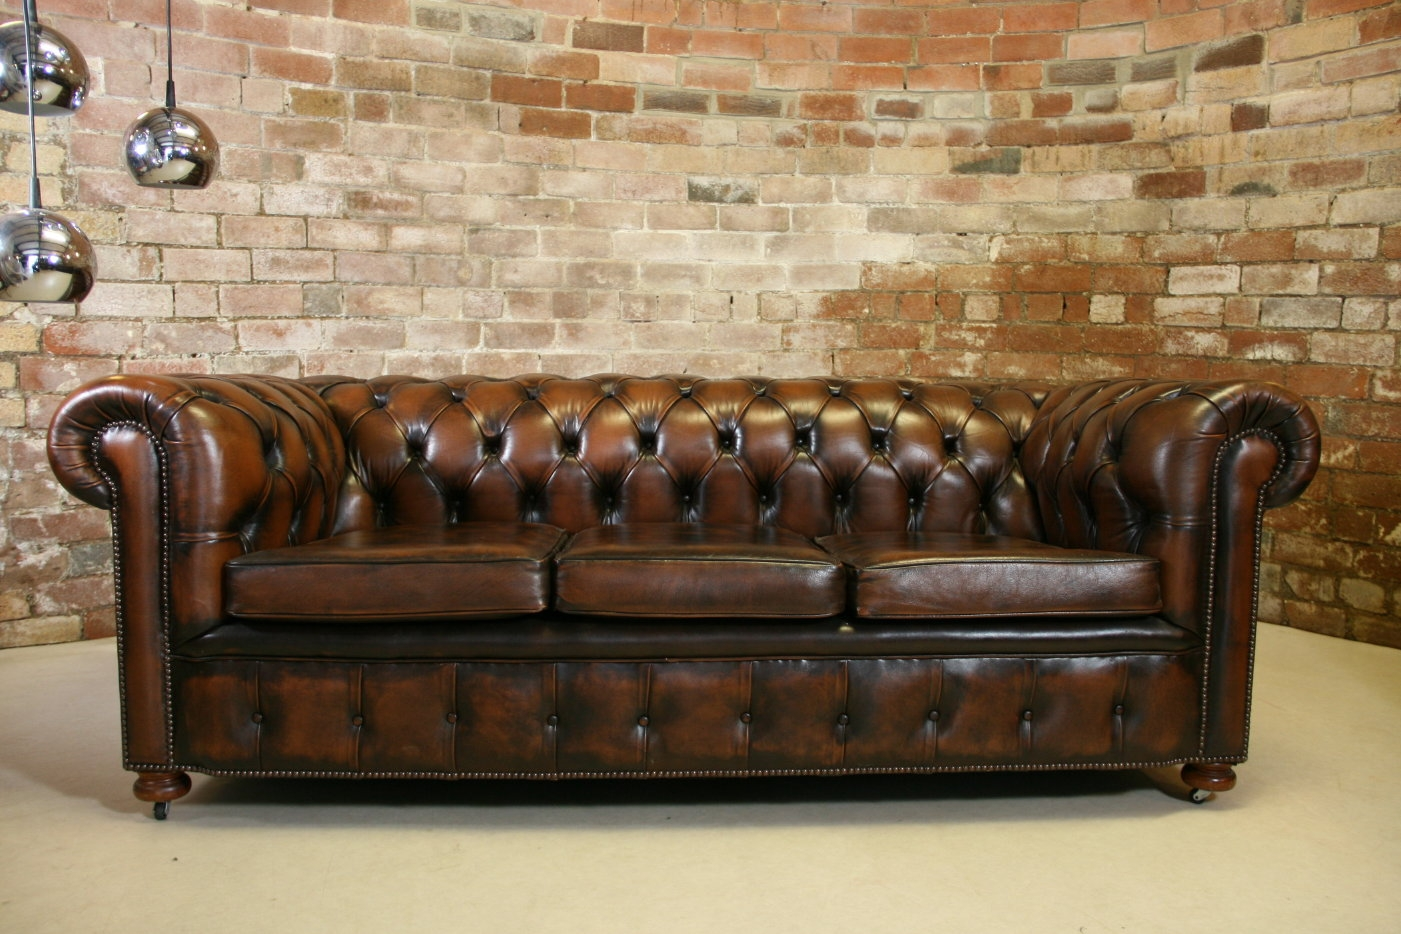 Vintage Chesterfield Antique Brown Leather 3 Seater Sofa Retro Throughout Vintage Sofa Styles (View 3 of 15)